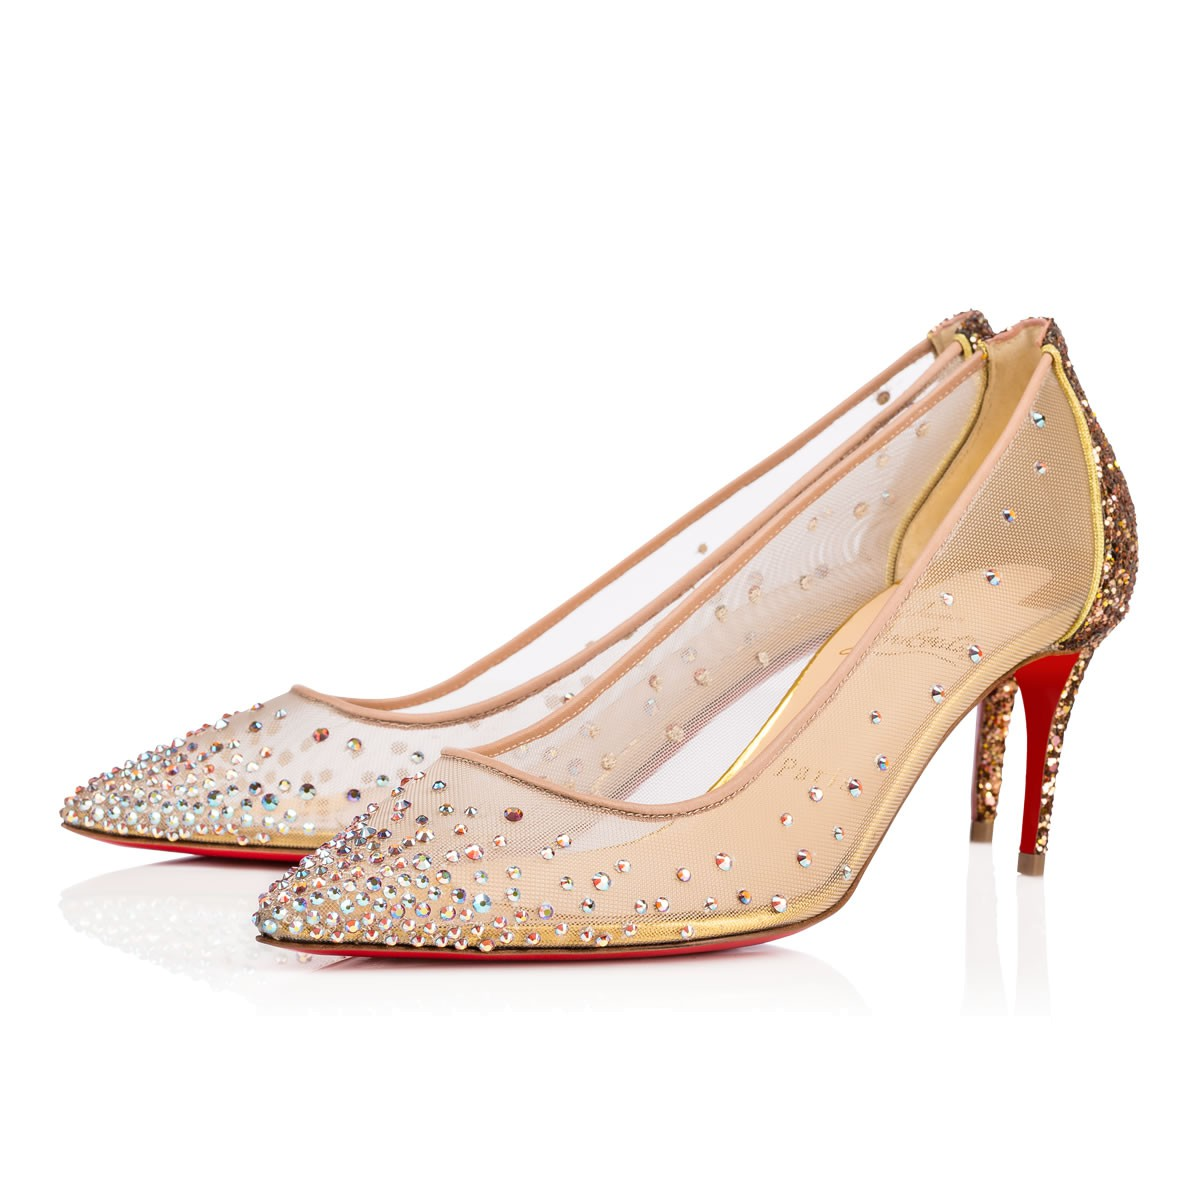 4600428c4f6c Christian Louboutin Follies Strass 70 Version Gold Strass - Women Shoes -